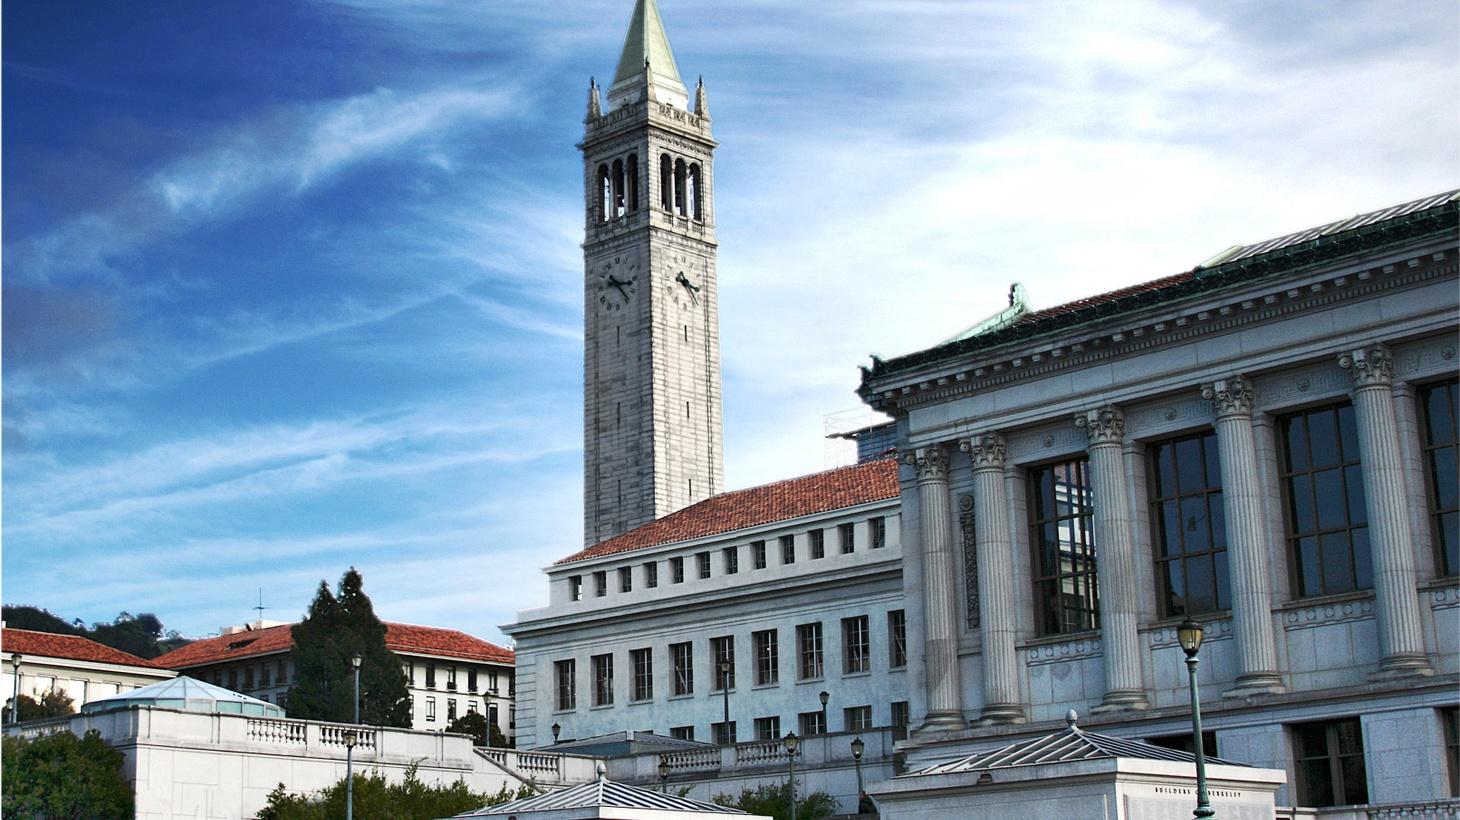 A state audit says the Office of the President at the University of California has kept secret more than $175 million. The report says salaries are a lot a higher in that office than in comparable offices. The audit comes just months after the UC system won approval for its first tuition hike in six years.